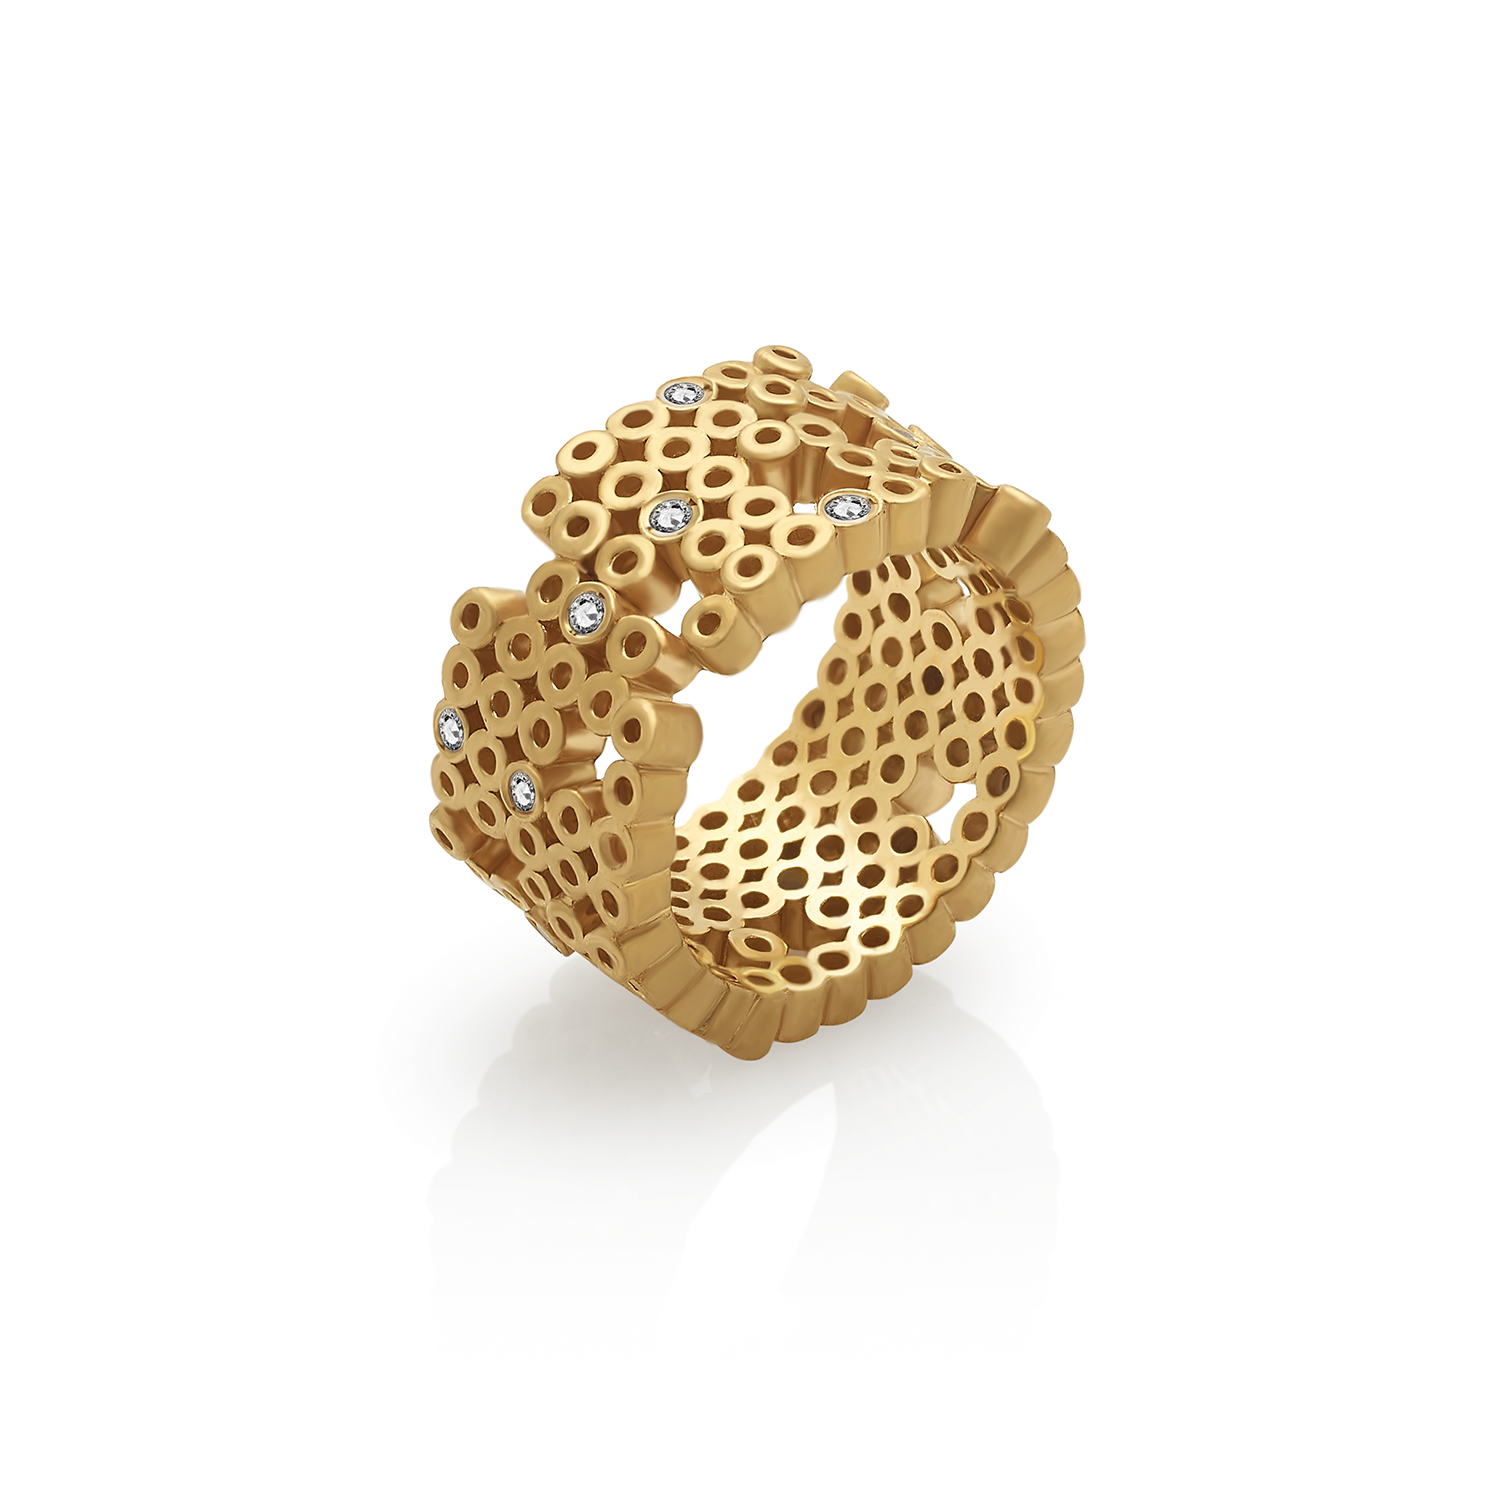 TUBE ring Sterling Silver / Gold Plated / Zircon When a circle is complete it's time to build new others or to open spaces!